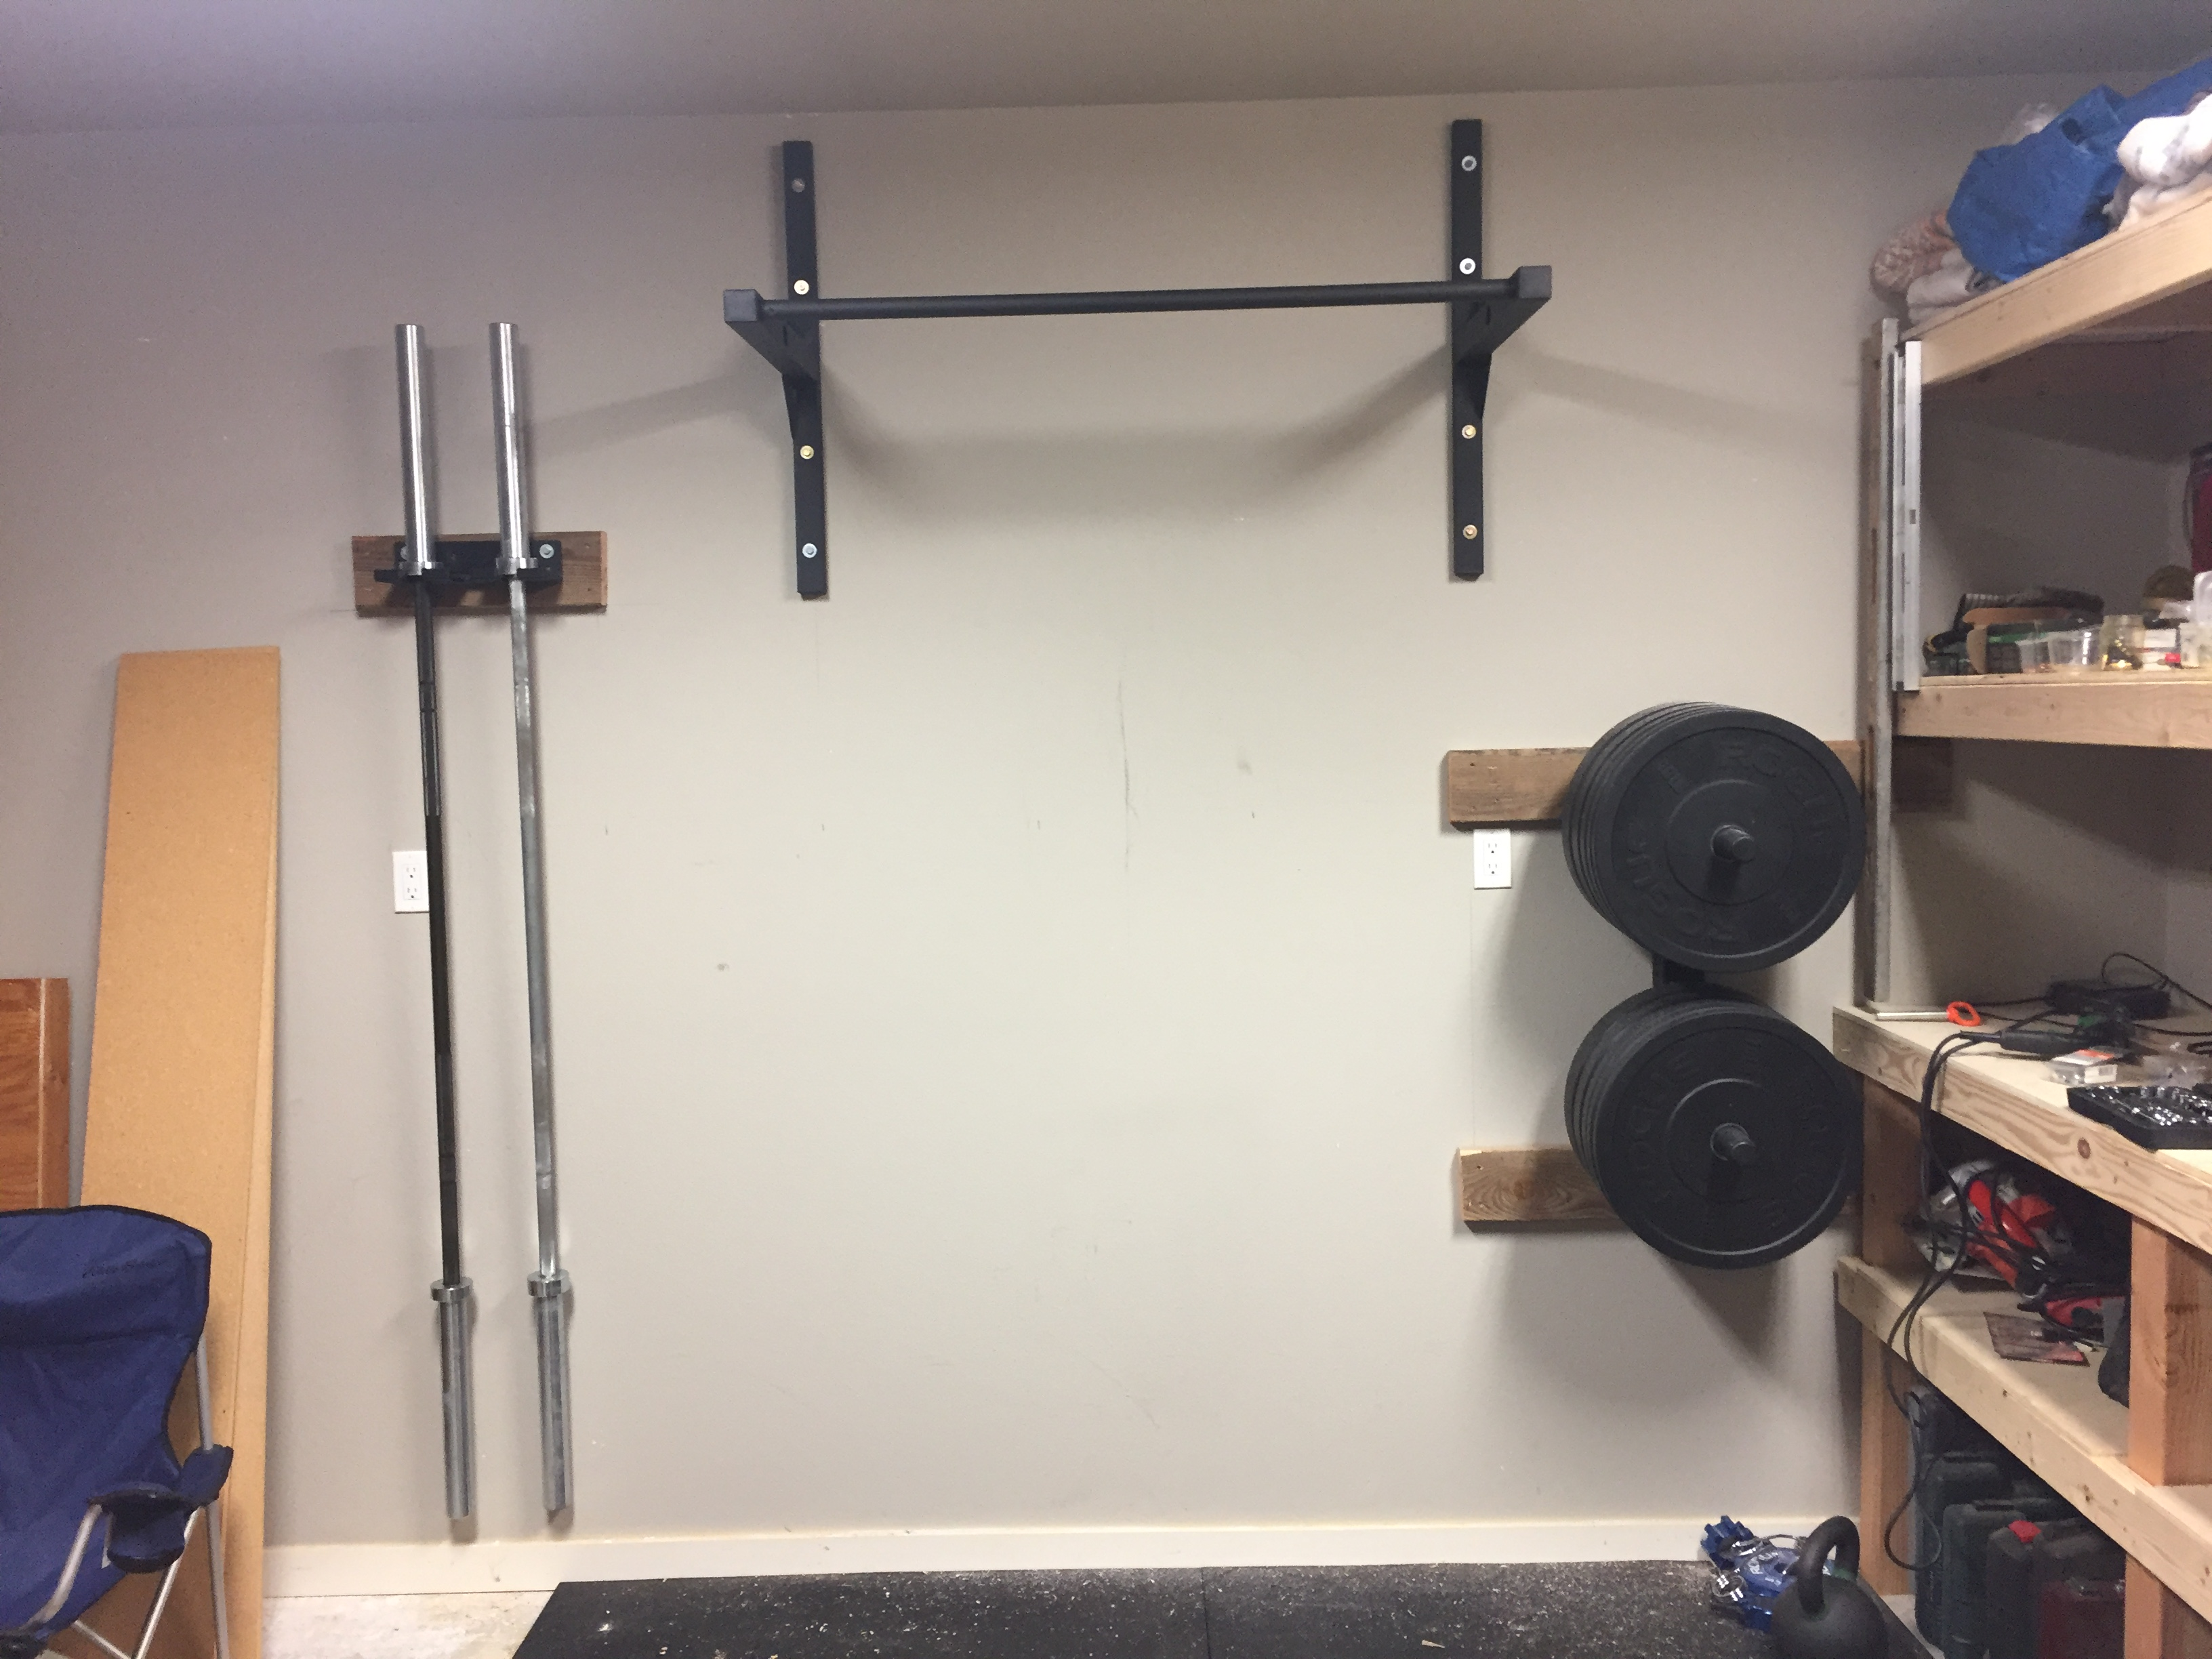 xte heavy mounted pull pullup garage stock p system duty of out wall bar up currently gym mount home